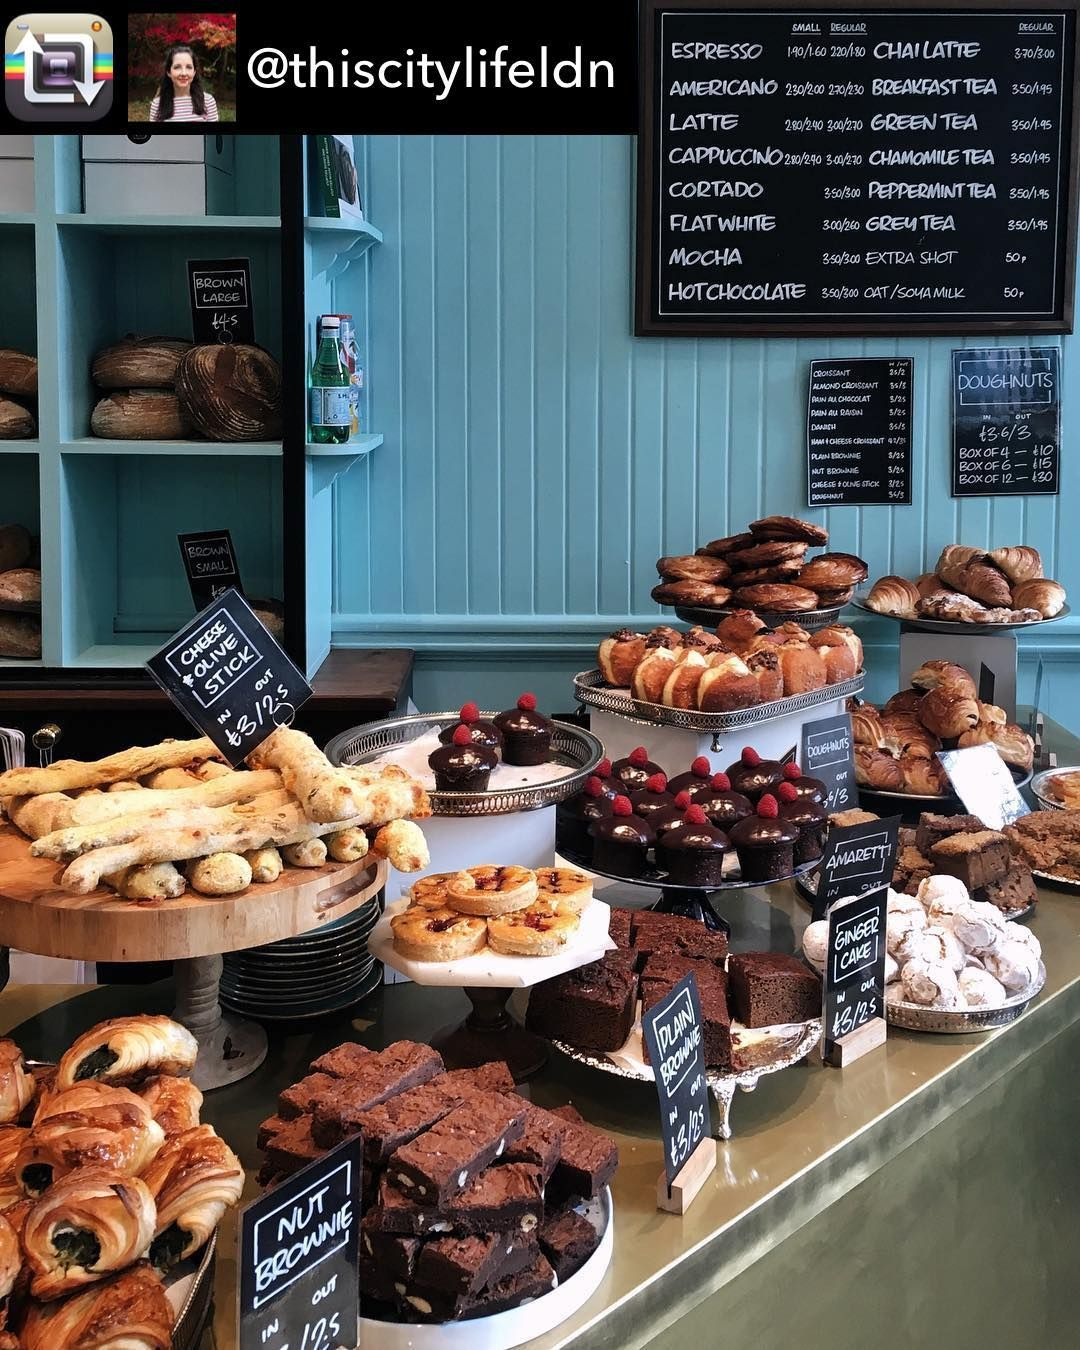 Instagram의 Breadahead님 Good Morning Londoners Repost From Thiscitylifeldn When You Re Standing On The Train In 2020 Bakery Shop Design Bakery Decor Cafe Food